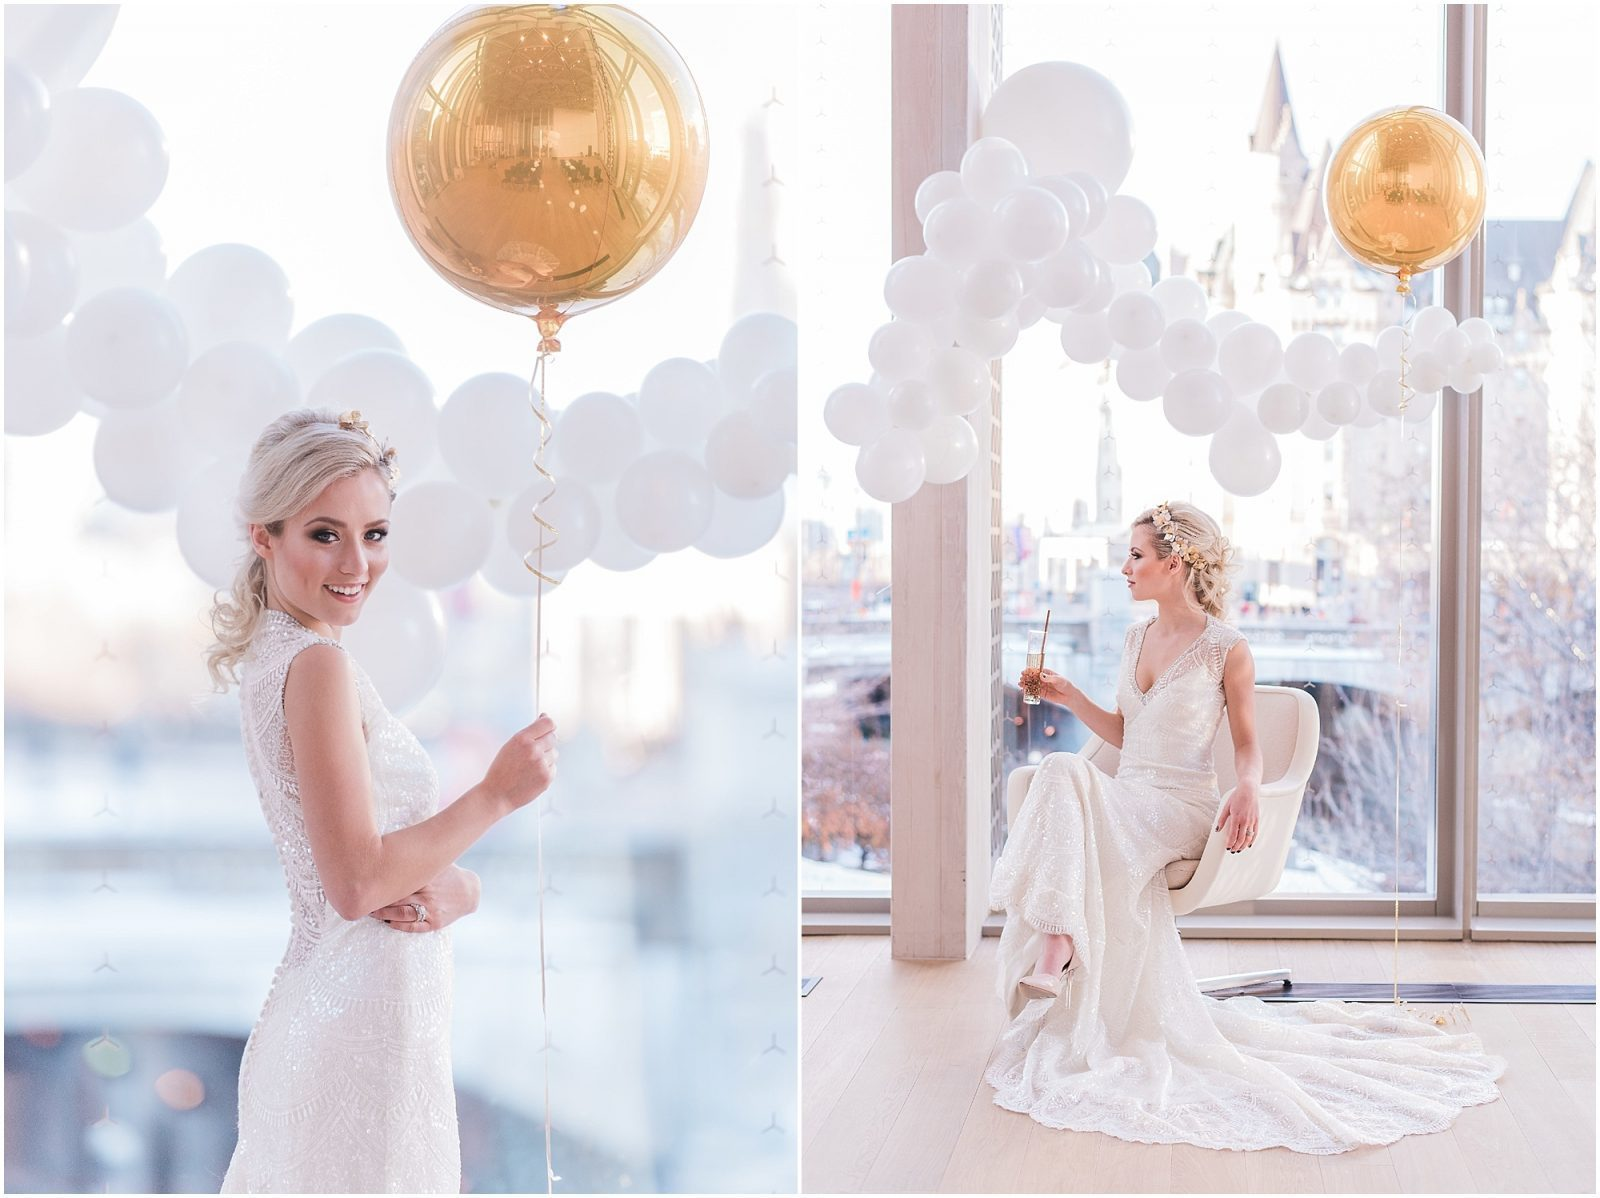 Wedding O'Born Room NAC Ottawa - New Years Glam Wedding Inspiration - bright and airy ottawa wedding photographer - elegant bride